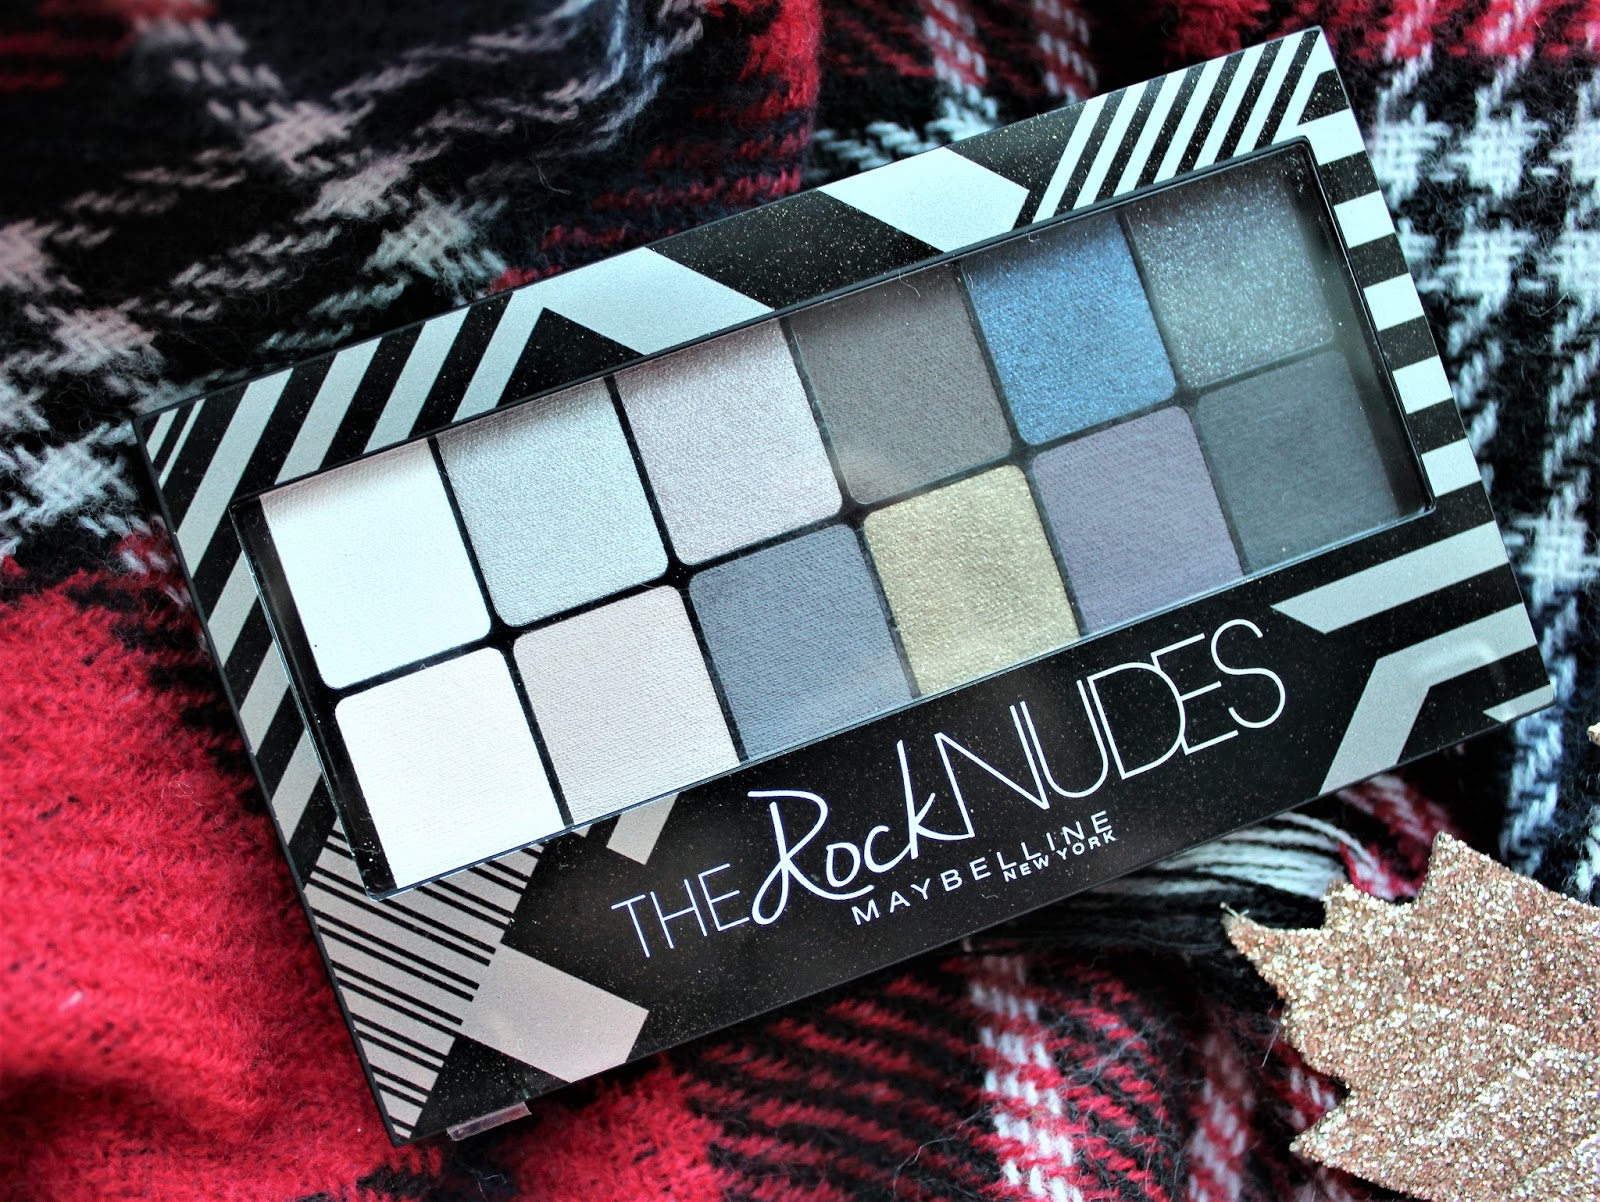 maybelline the rock nudes palette review